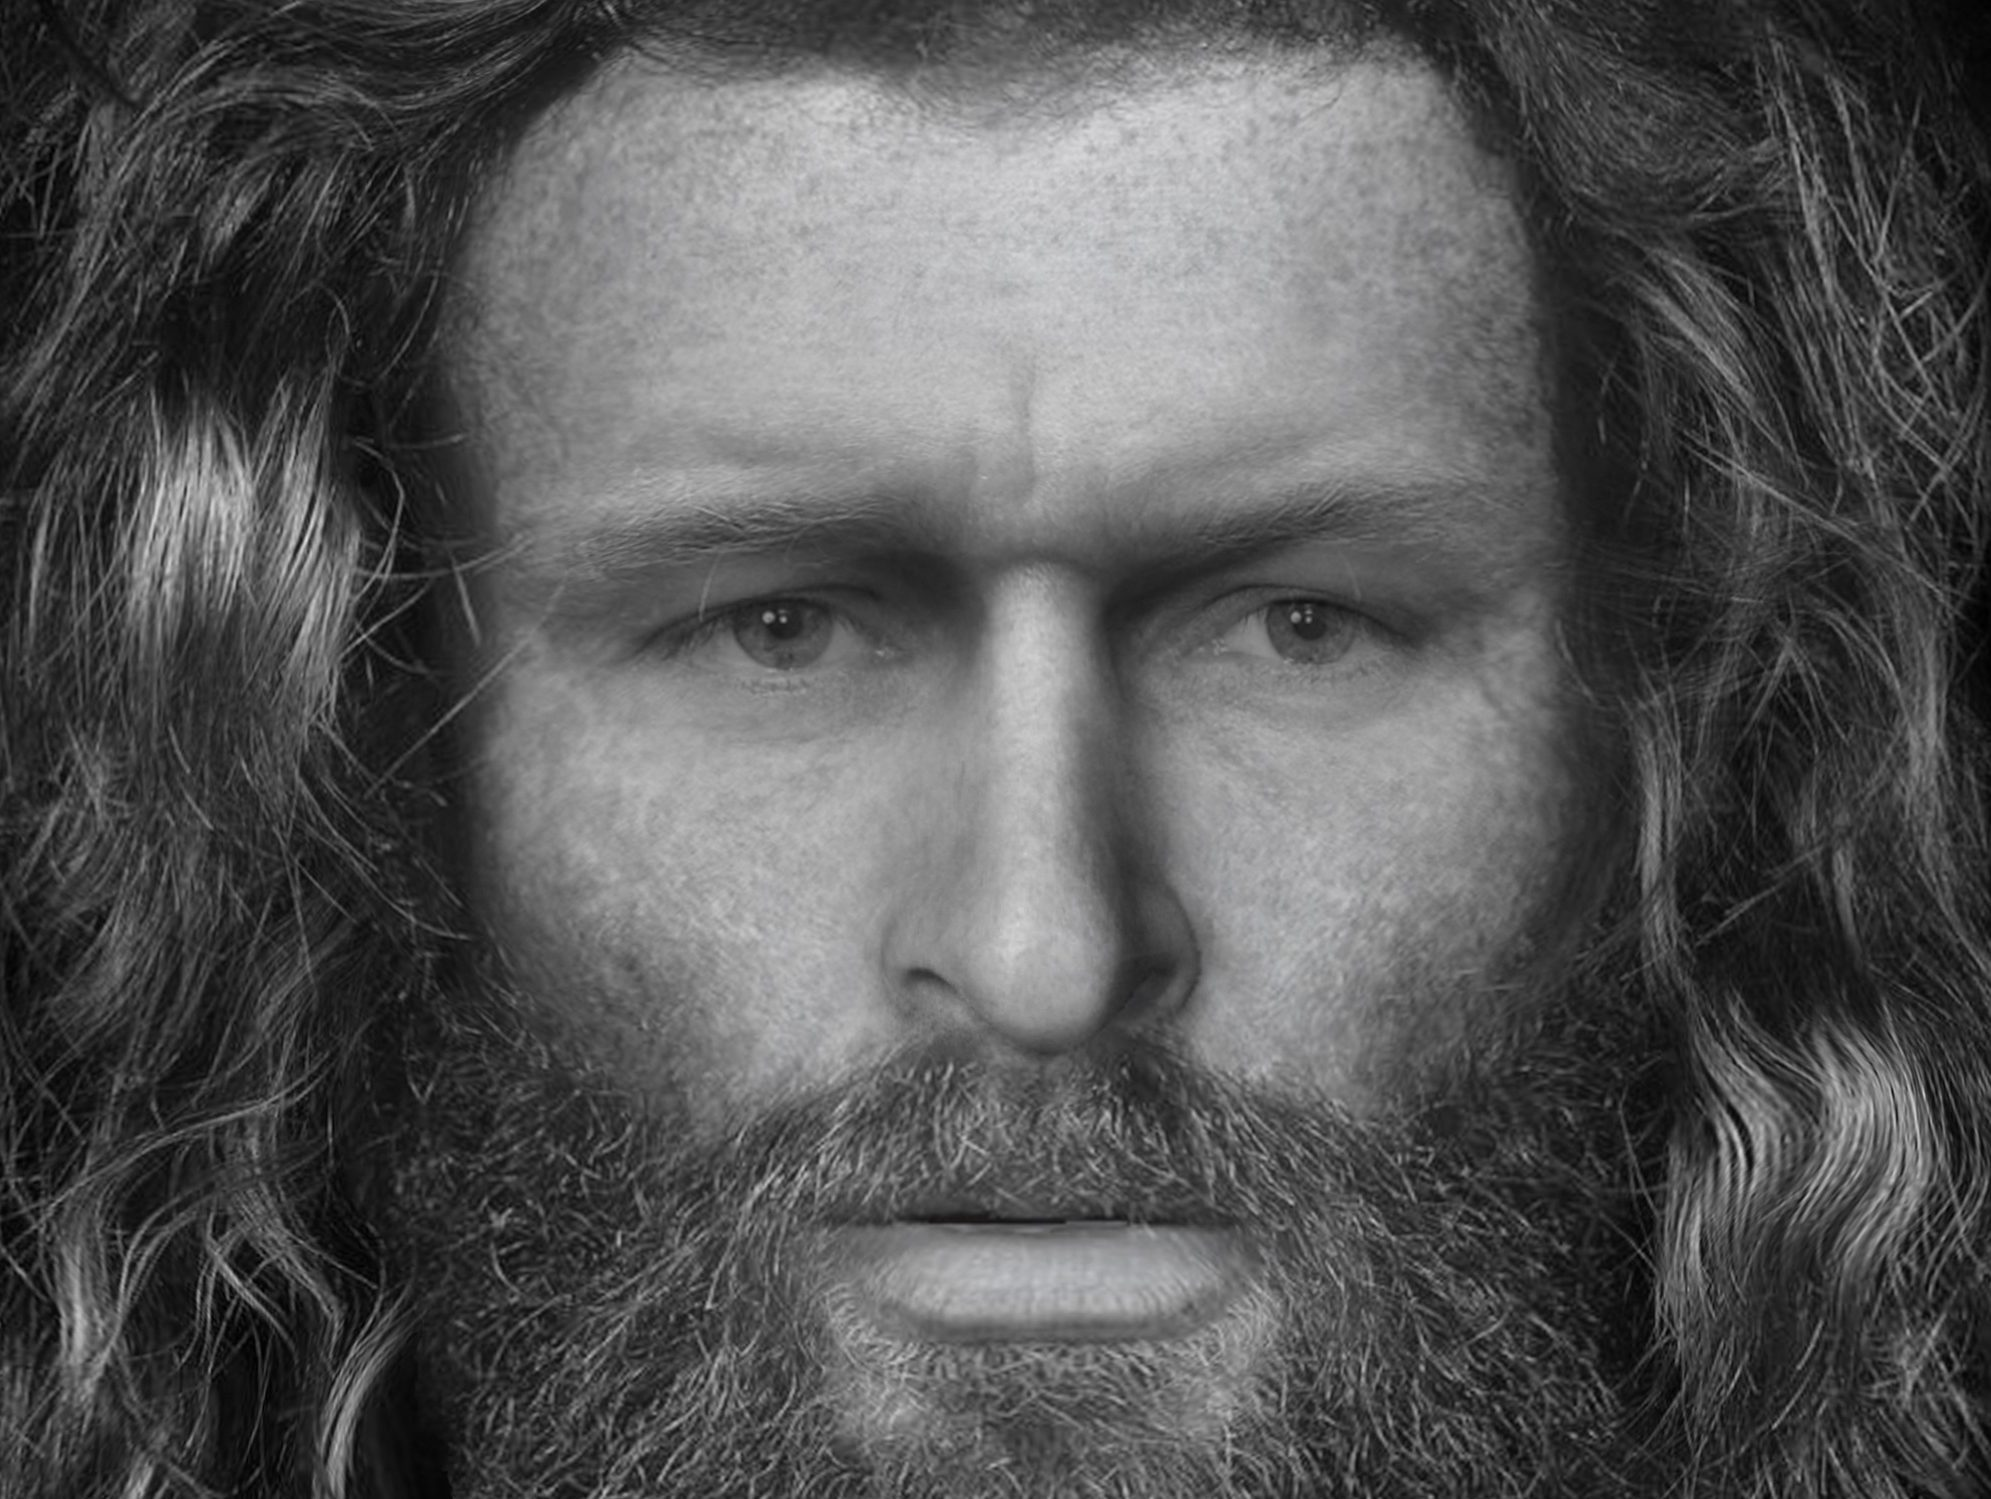 The man is thought to have been murdered in the 5th or 6th century AD.